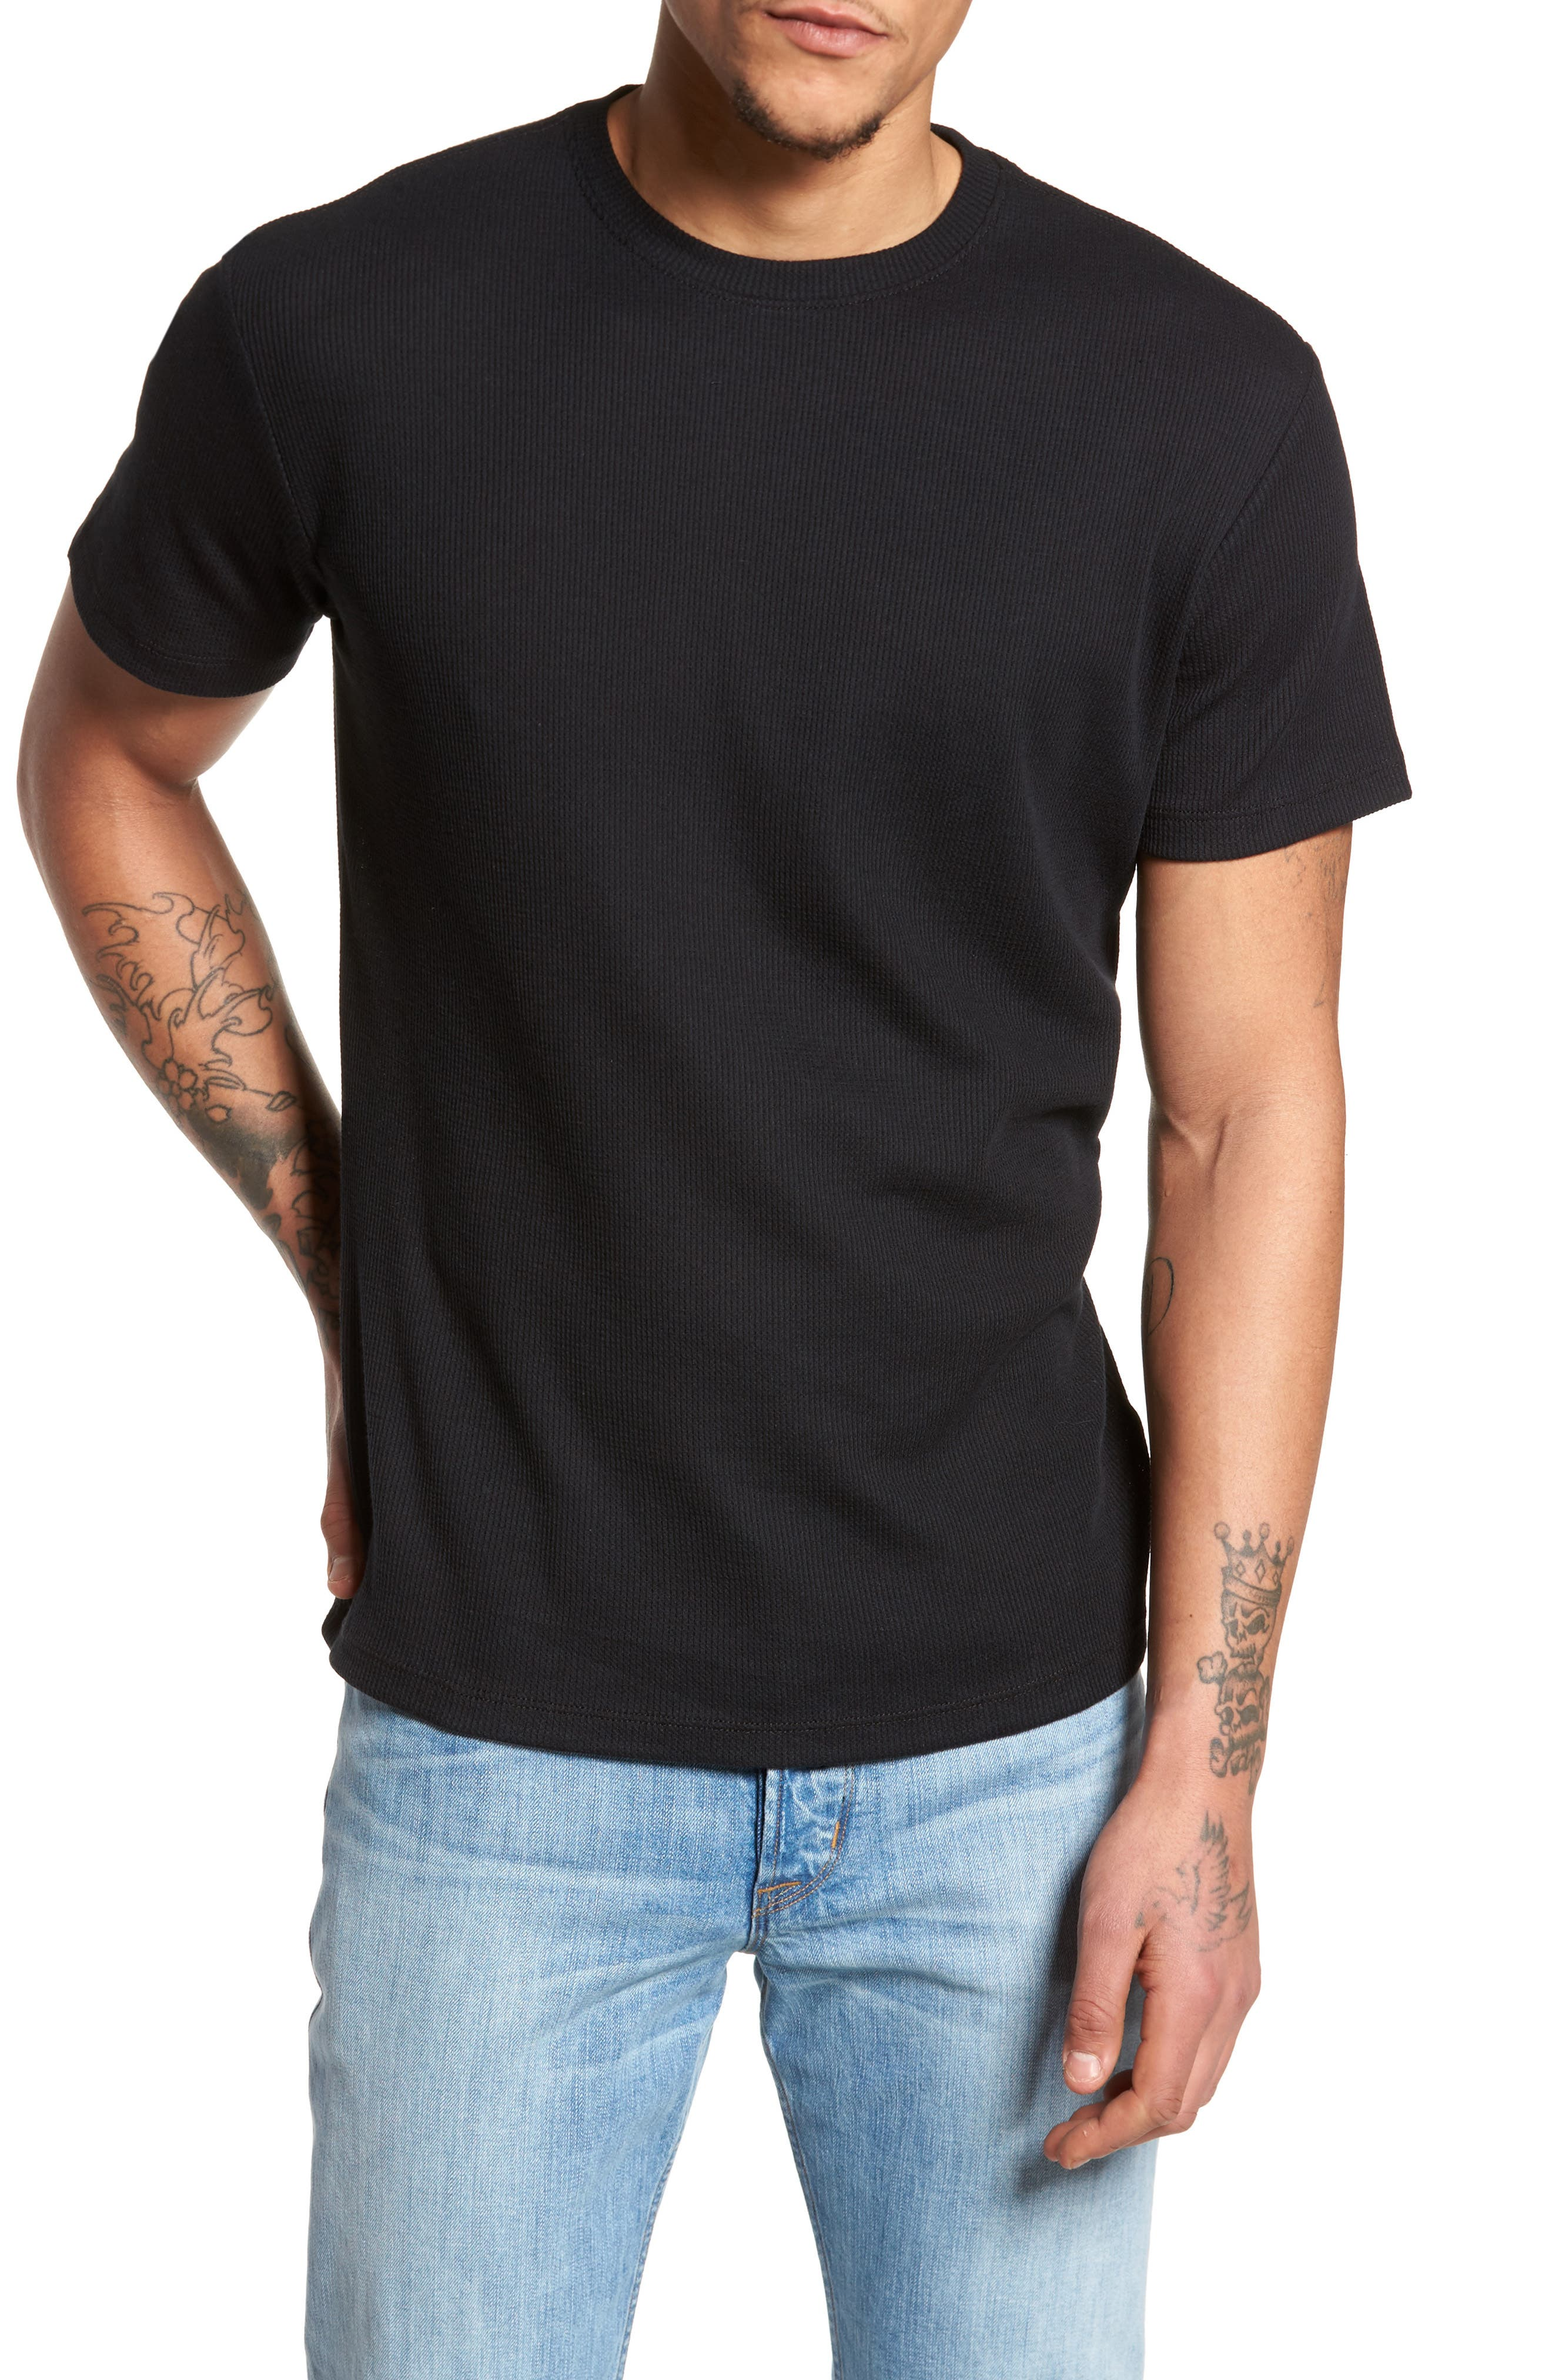 Thermal T-Shirt,                             Main thumbnail 1, color,                             Black Rock